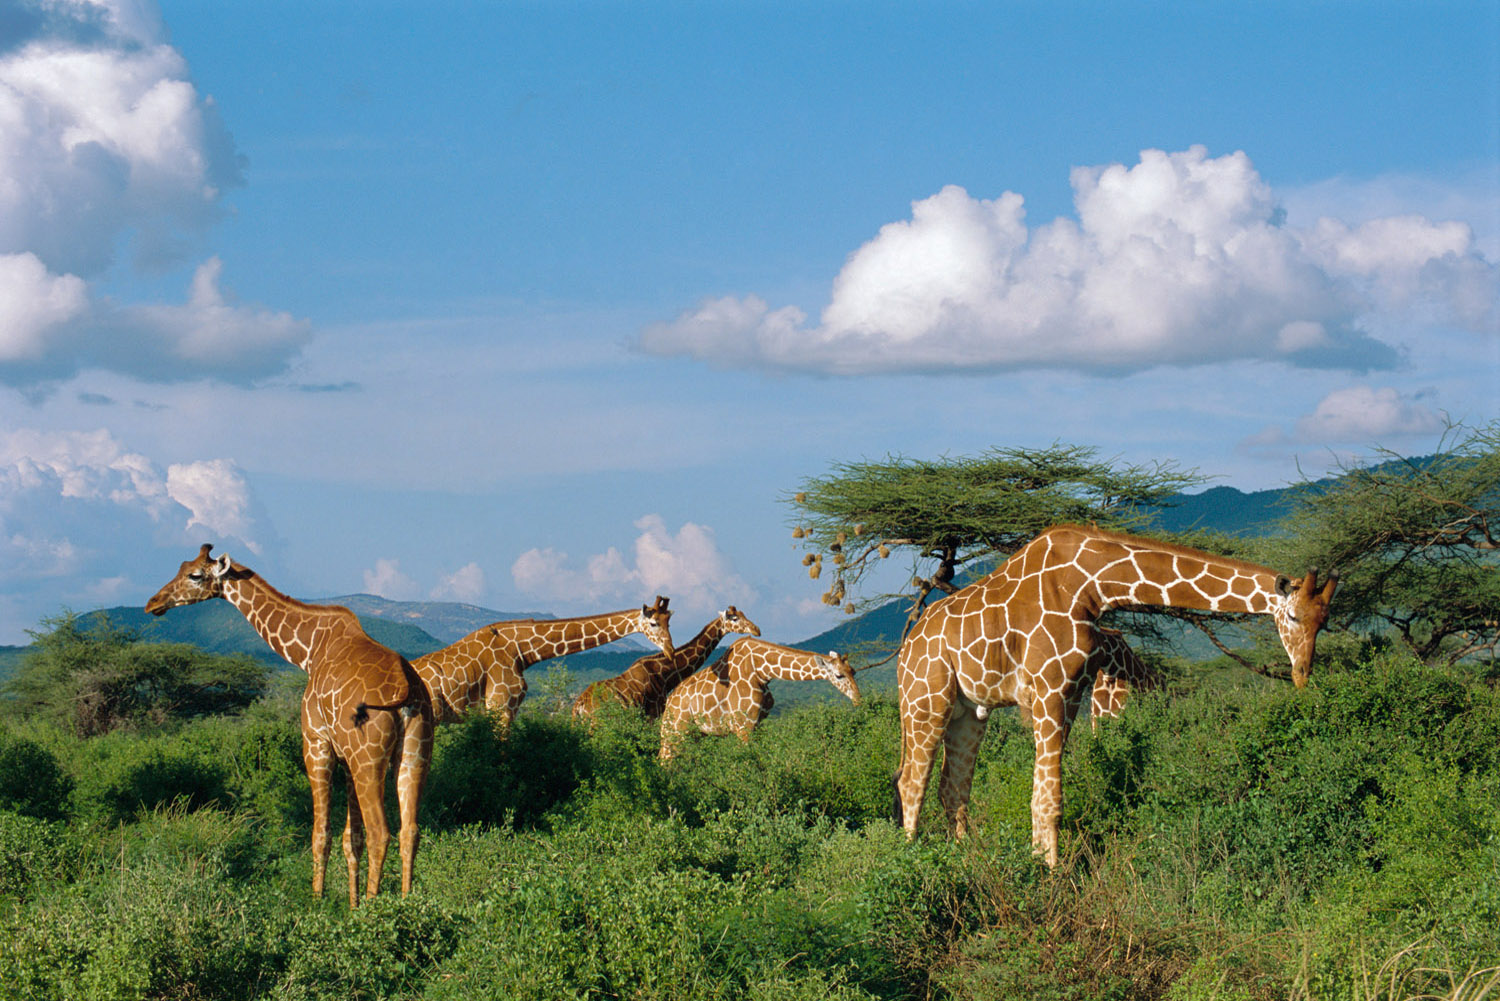 Reticulated giraffes browsing, Buffalo Springs National Reserve, Kenya